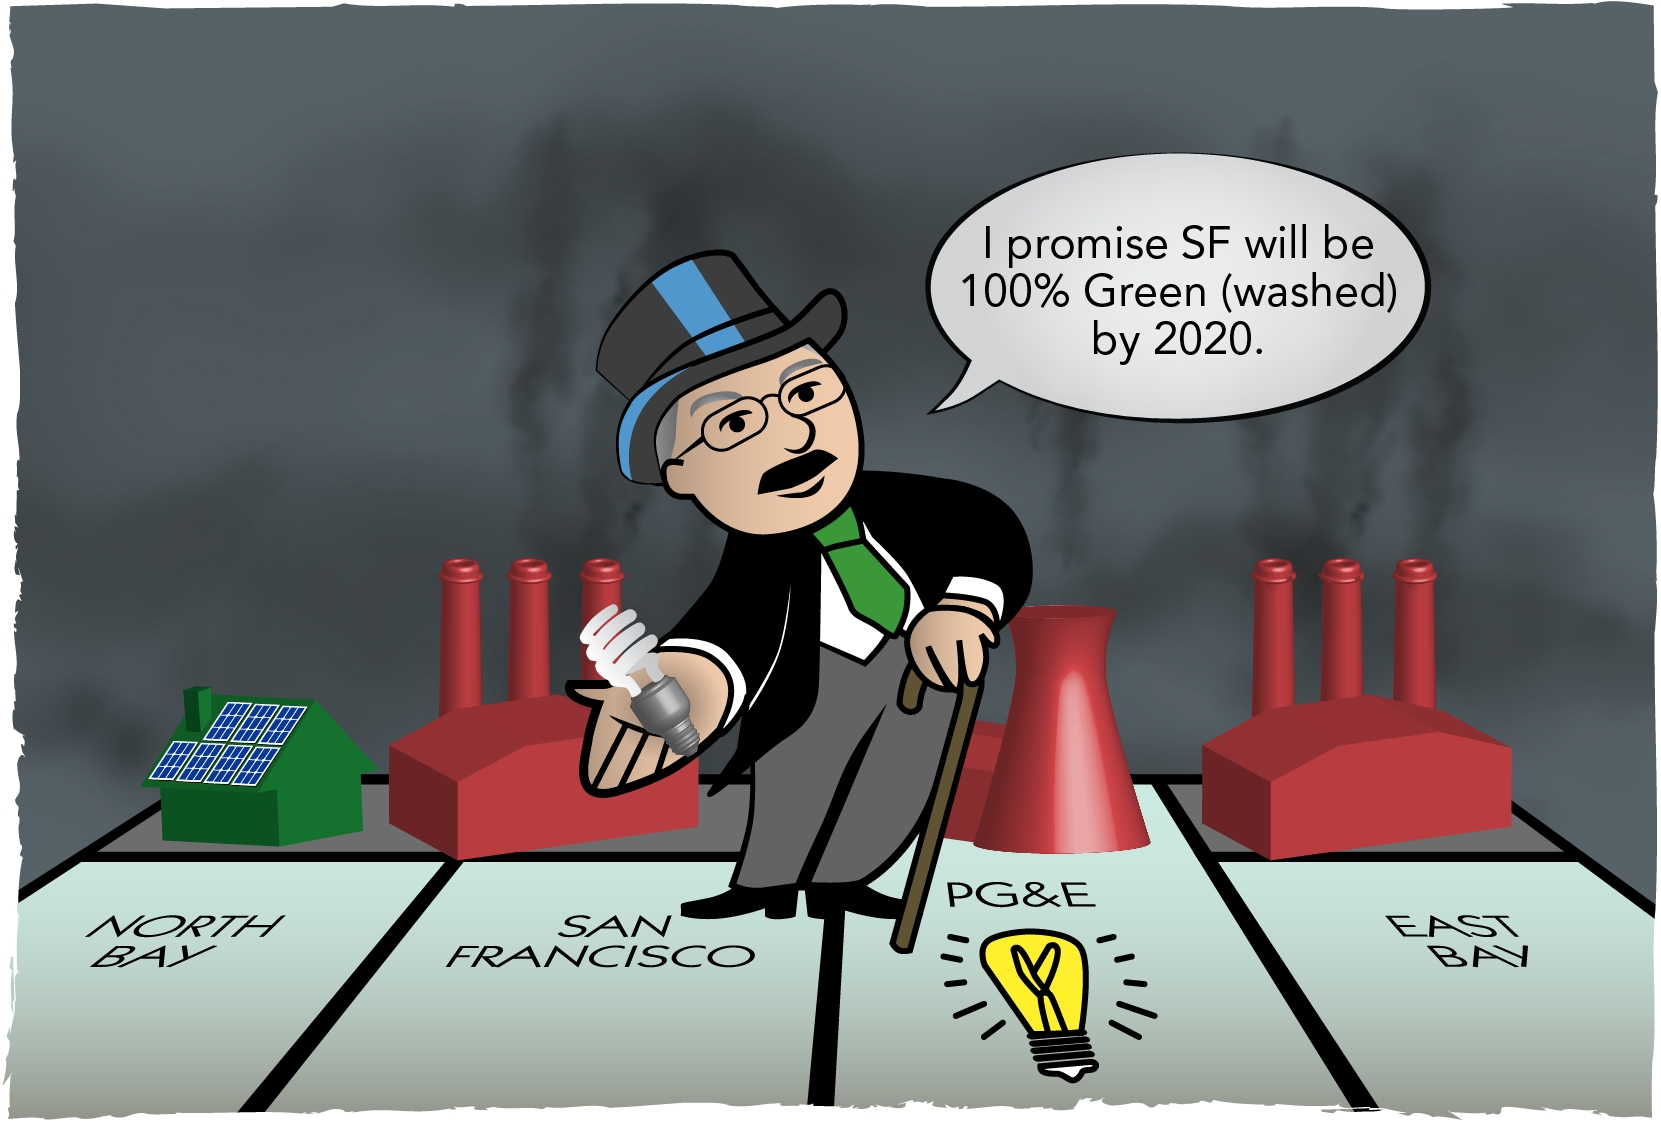 Mayor Lee supports PG&E's monopoly